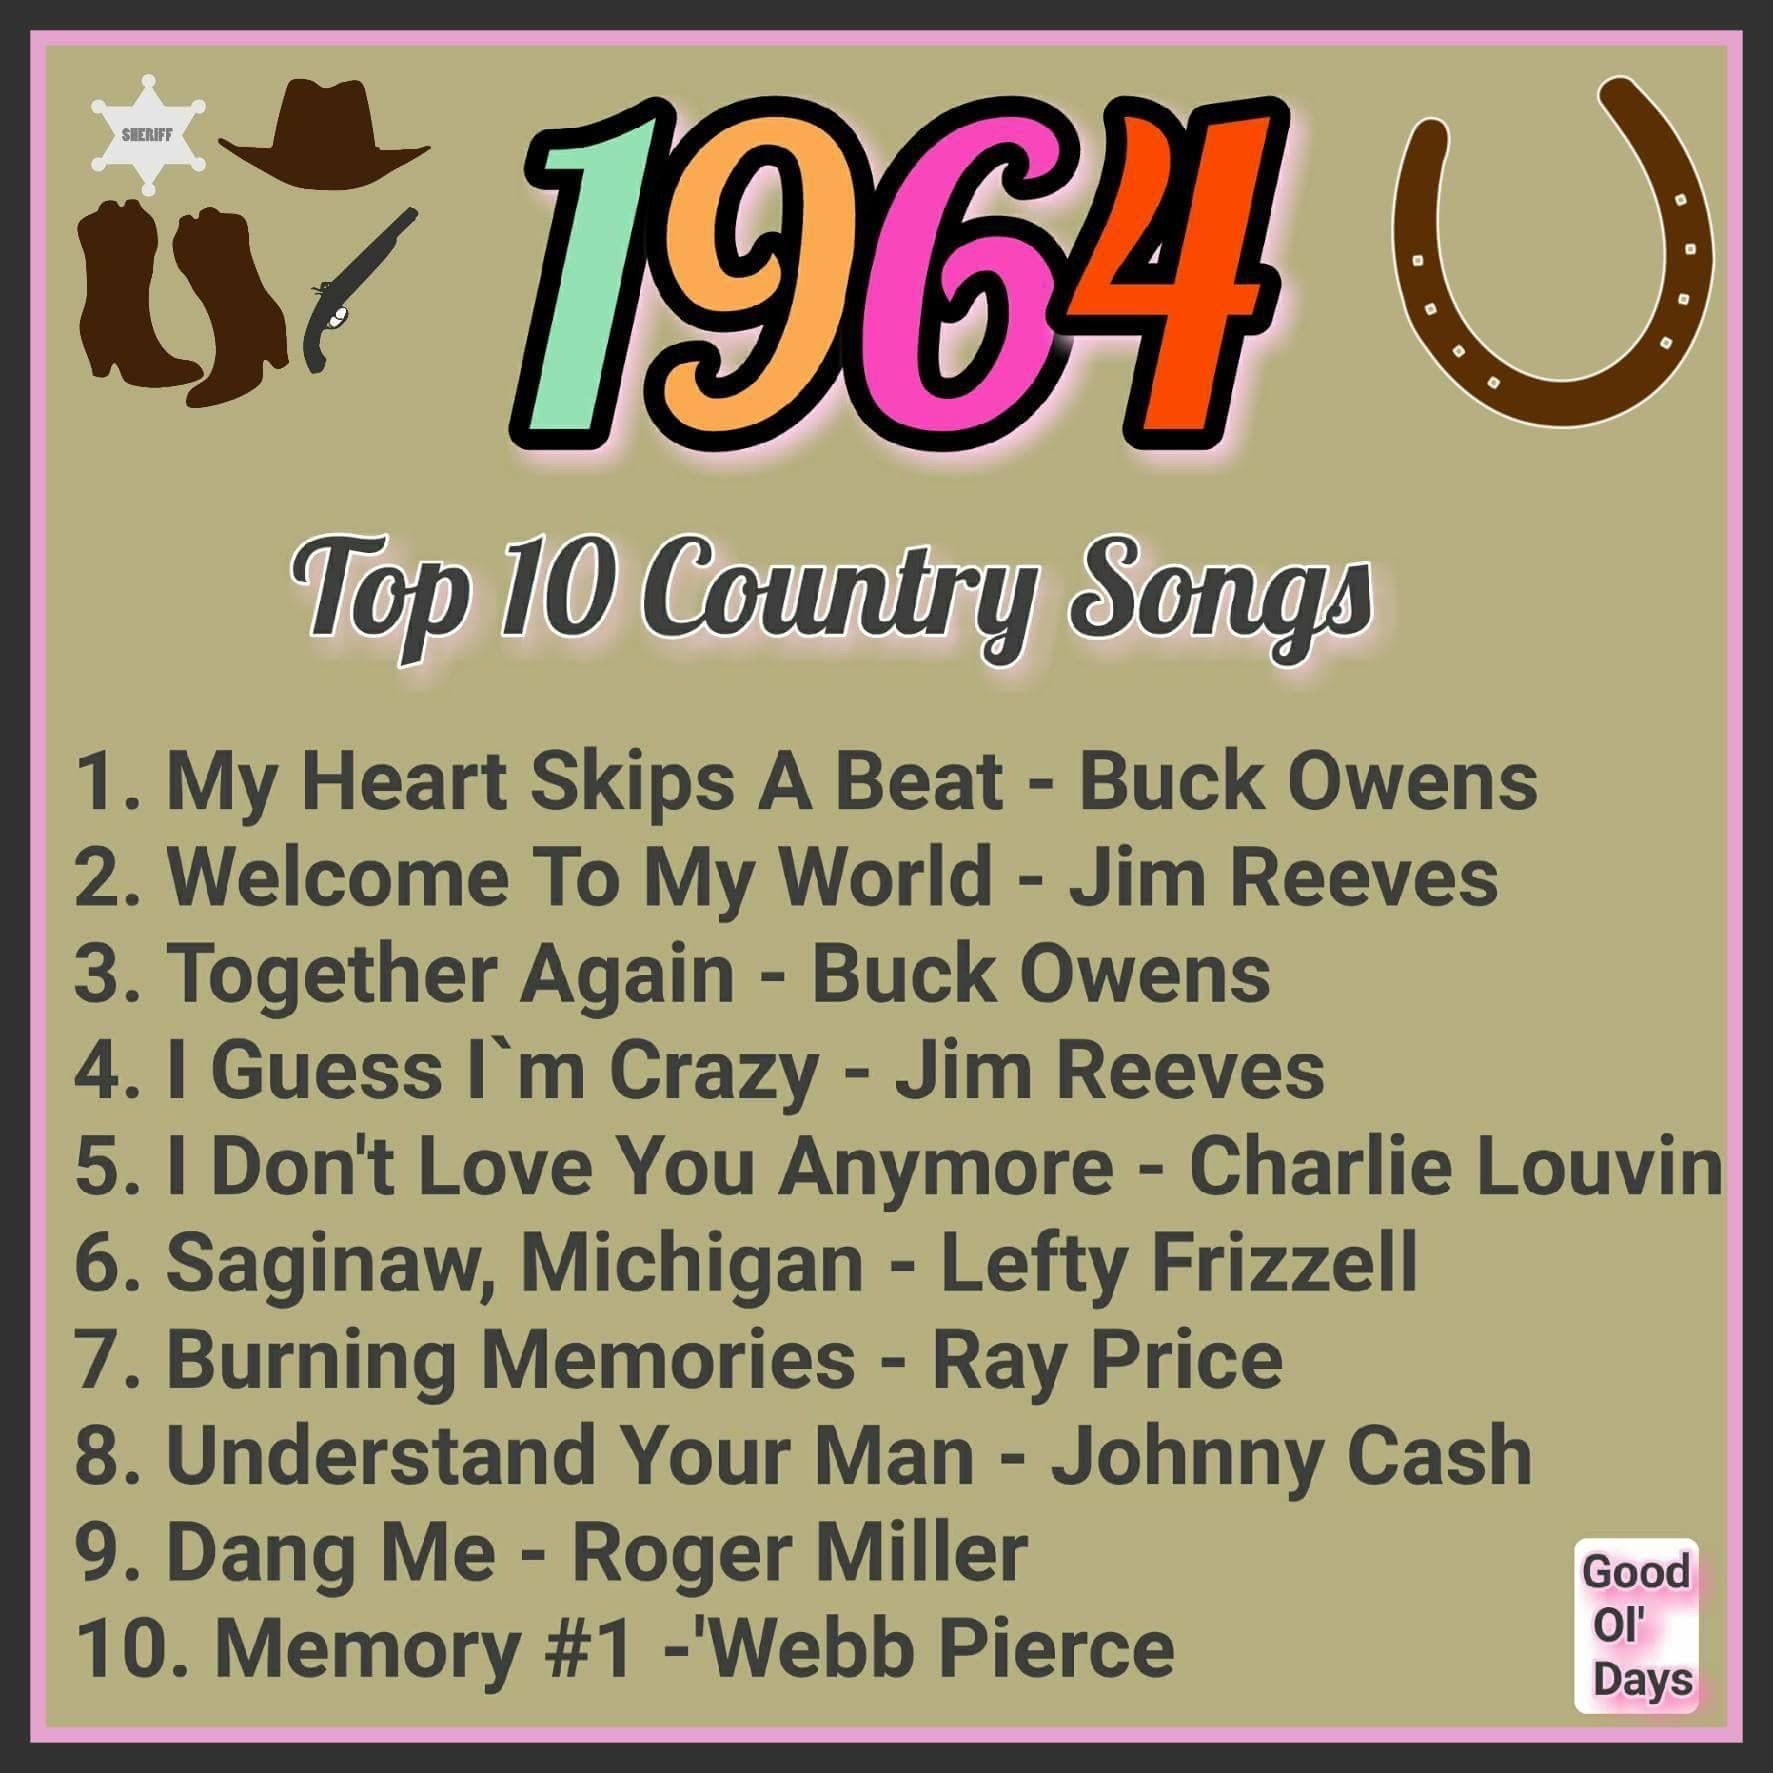 Vintage art Music charts, Top 10 country songs